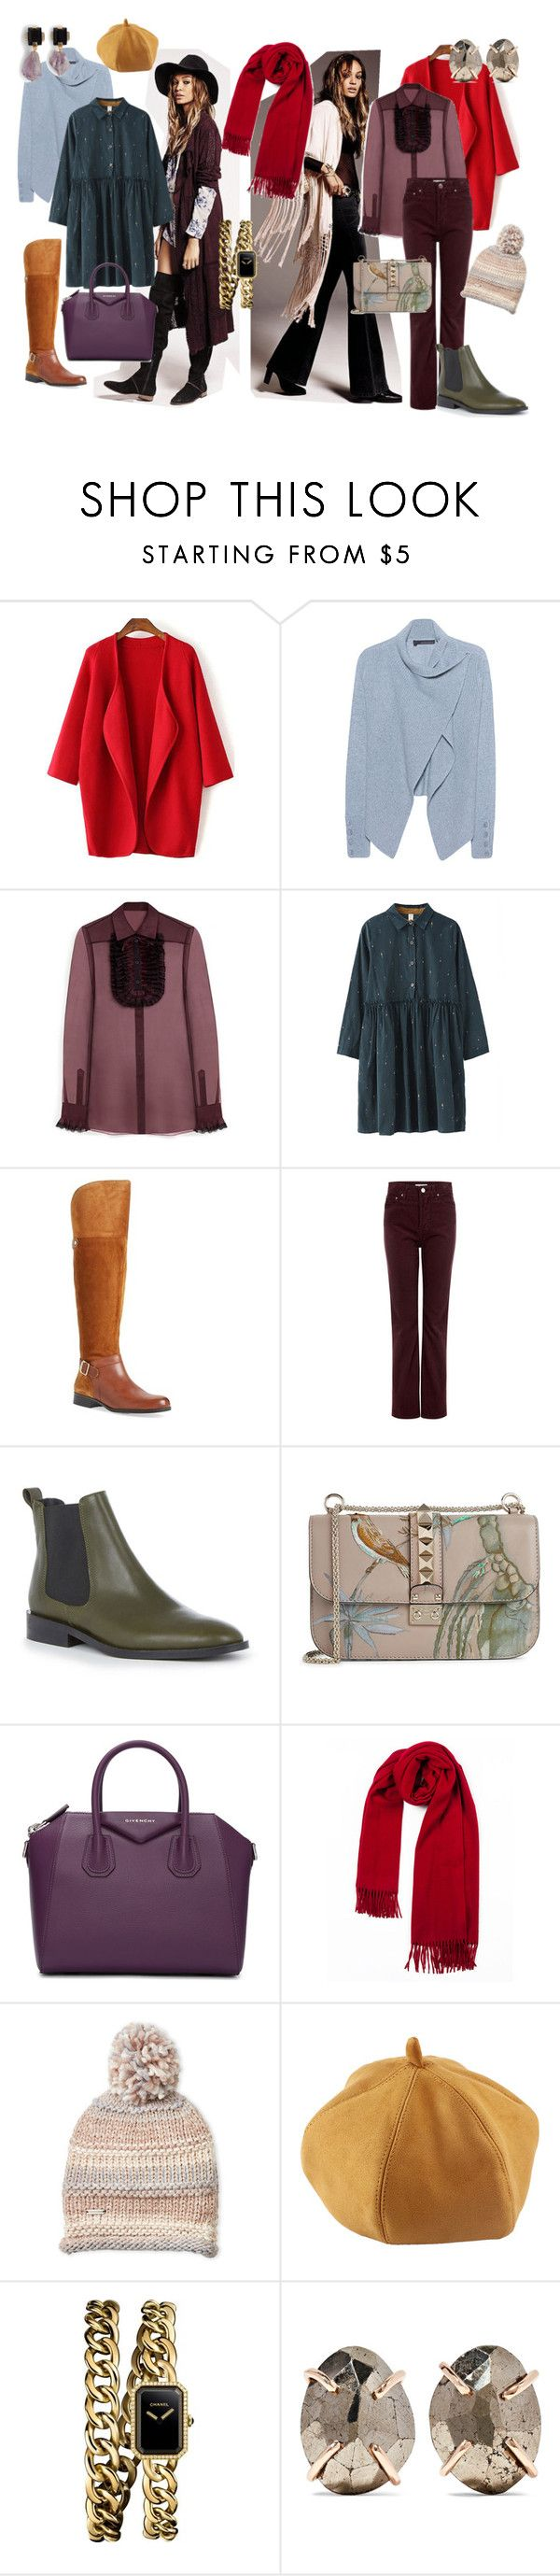 Boho my love by valerigi on Polyvore featuring мода, Mulberry, 360 Sweater, AG Adriano Goldschmied, Naturalizer, Warehouse, Givenchy, Valentino, Chanel and Melissa Joy Manning